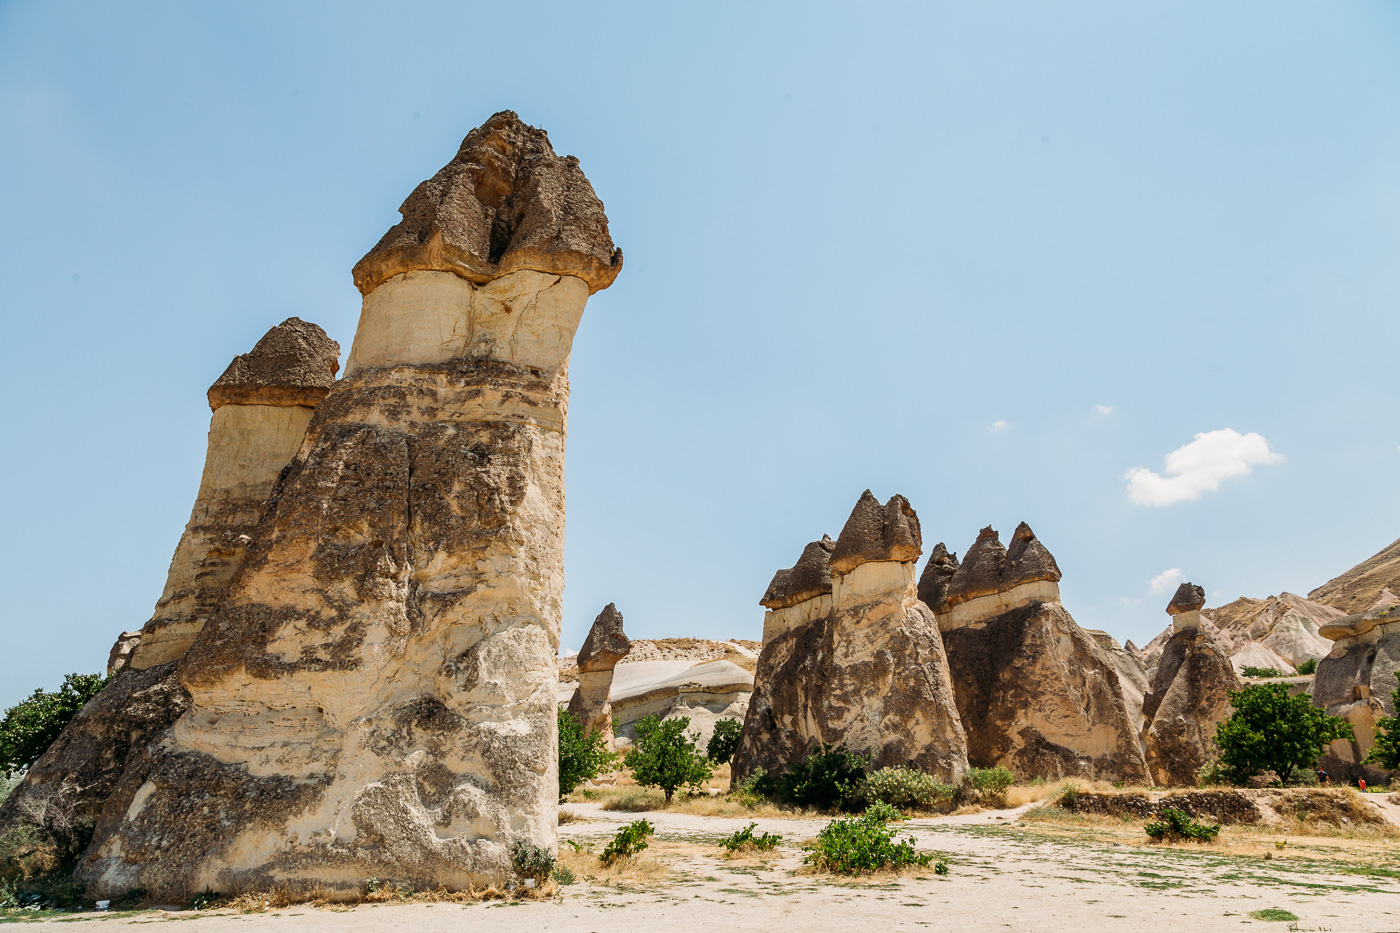 Cappadocia's Pasabag Valley (or monks valley) showcases where monks used to spend their lives in solitude